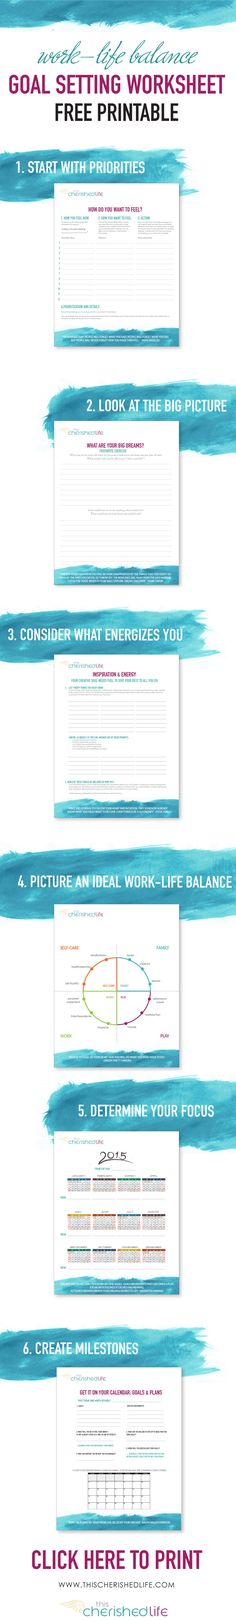 FREE 2015 goal setting printable worksheet - Set goals that matter for work life balance especially for busy moms